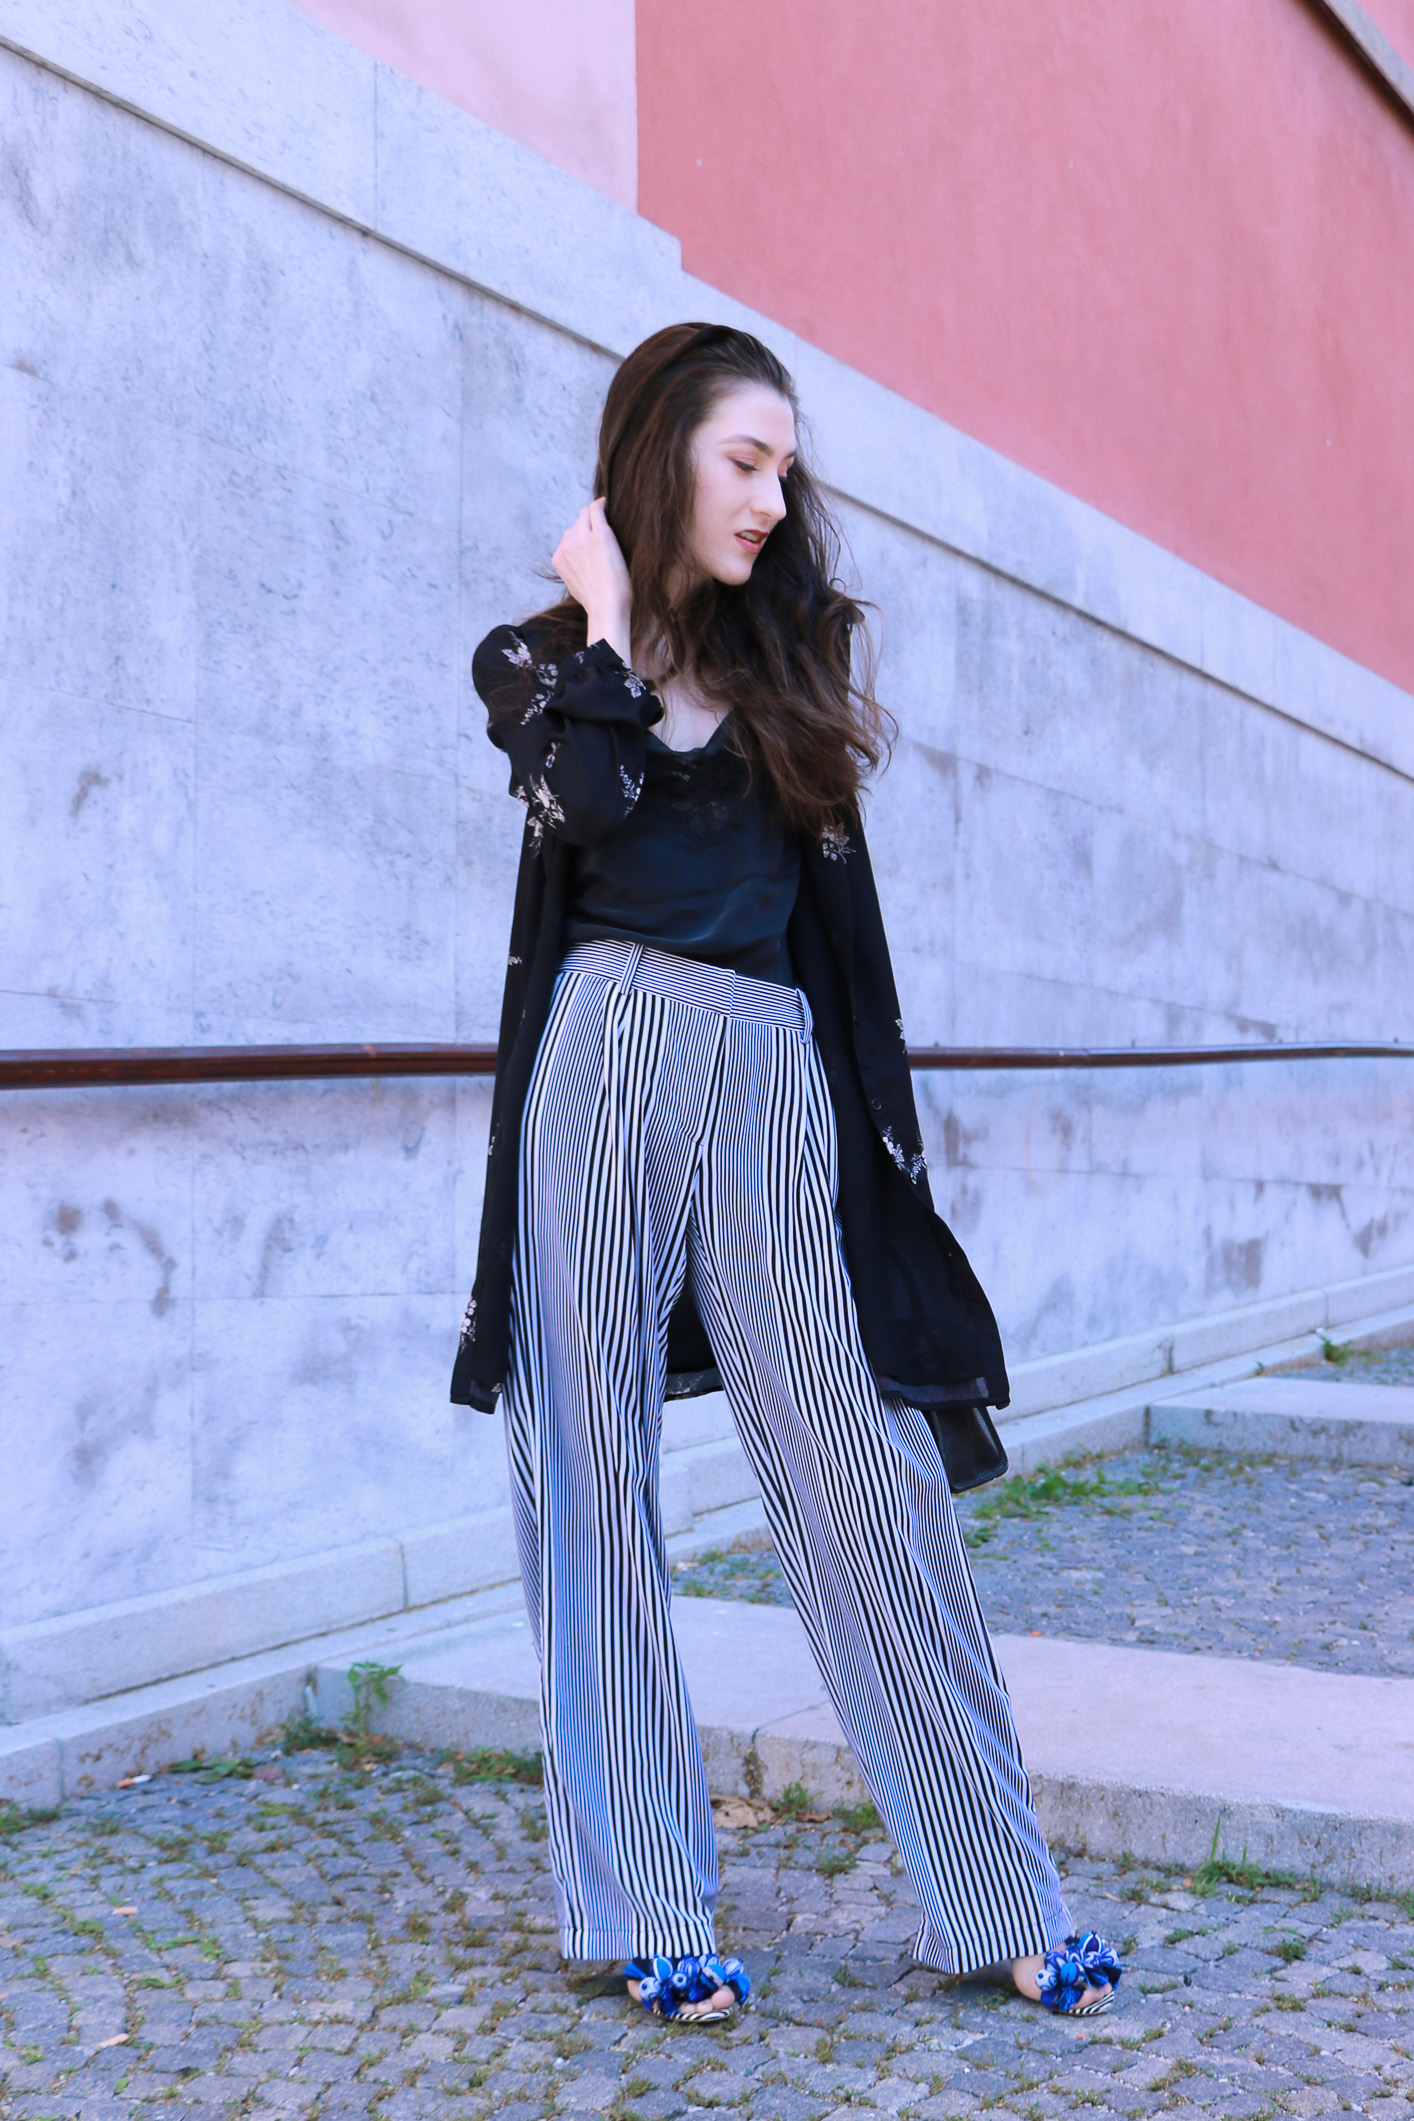 Fashion blogger Veronika Lipar of Brunette From Wall Street sharing how to style long layers for a chic summer look, wearing dark floral shirtdress and wide-leg trousers